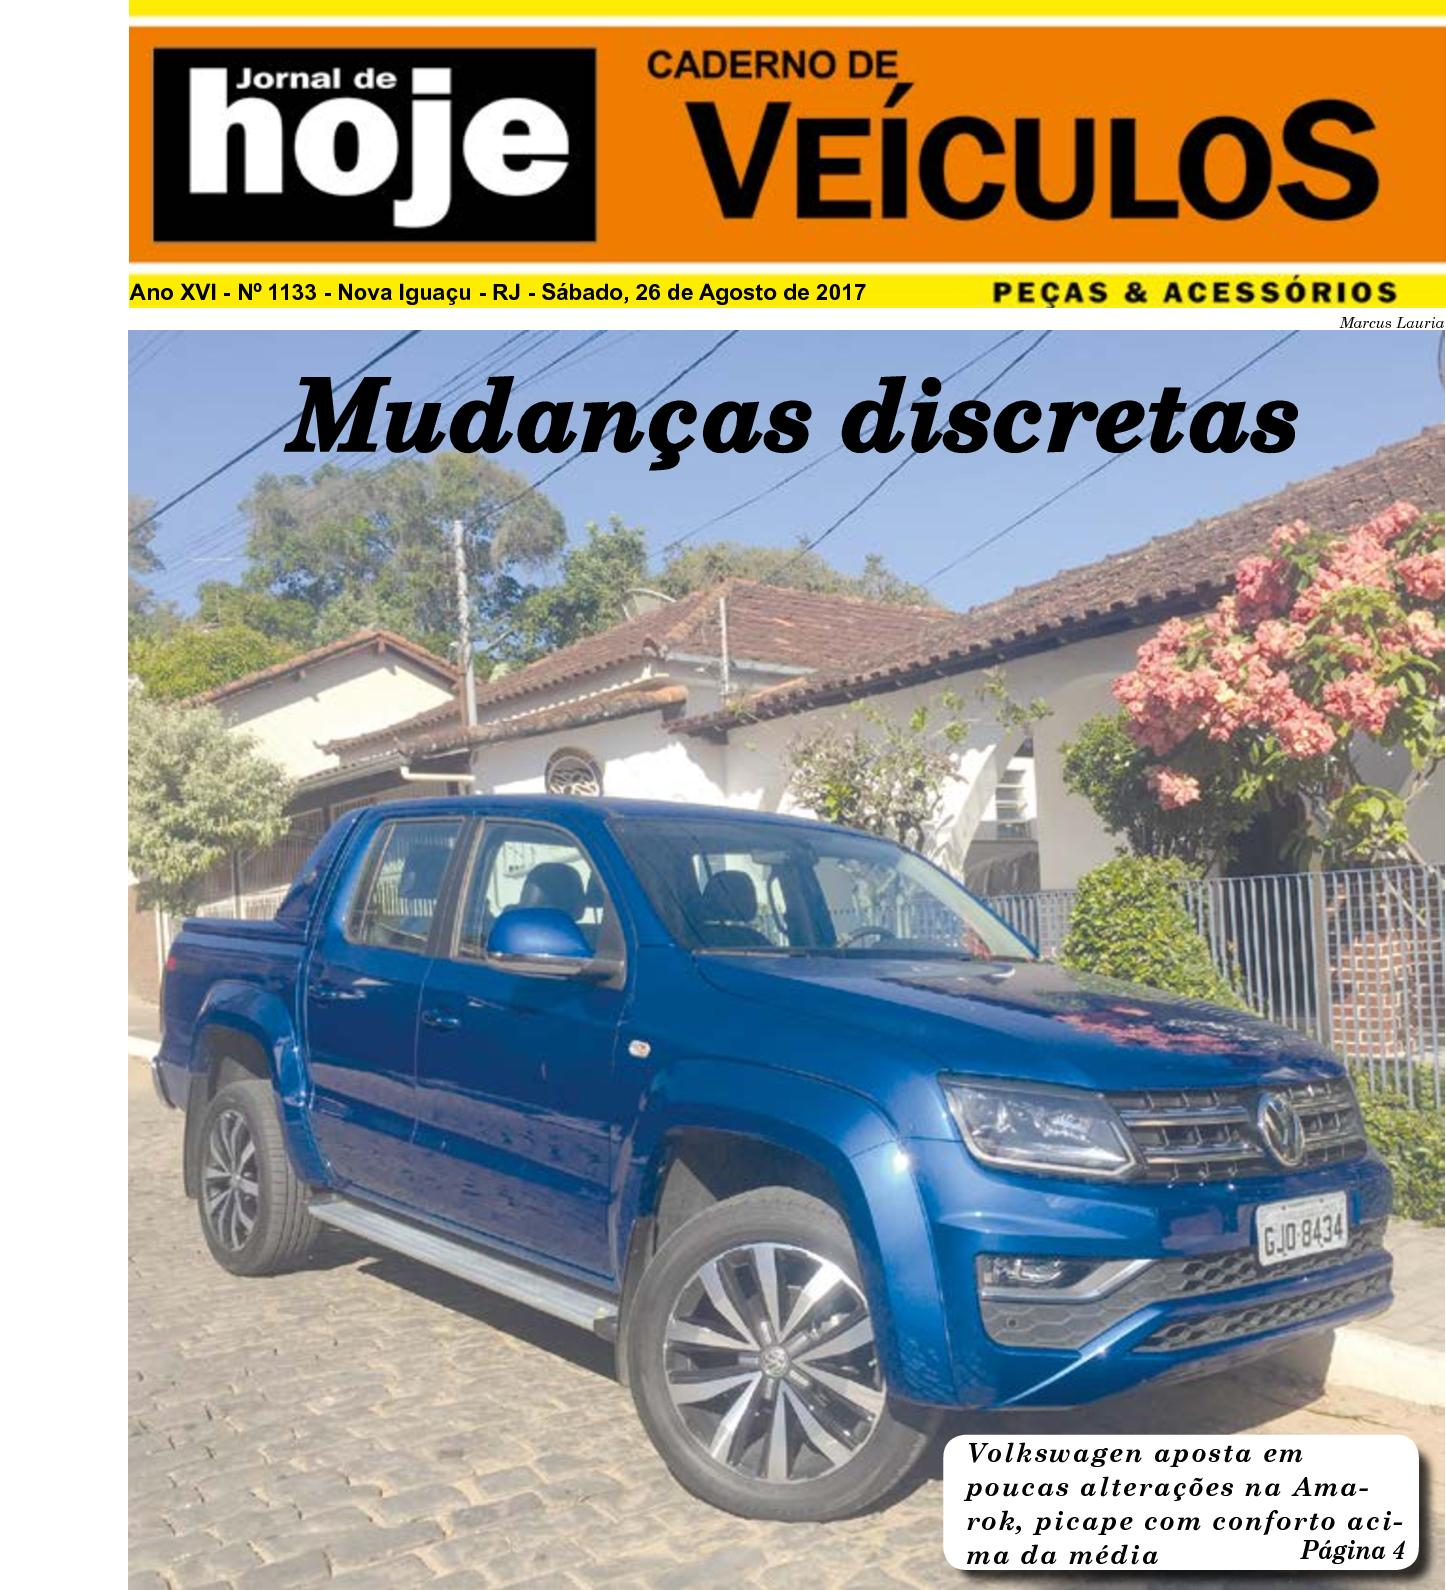 Veiculos 260817